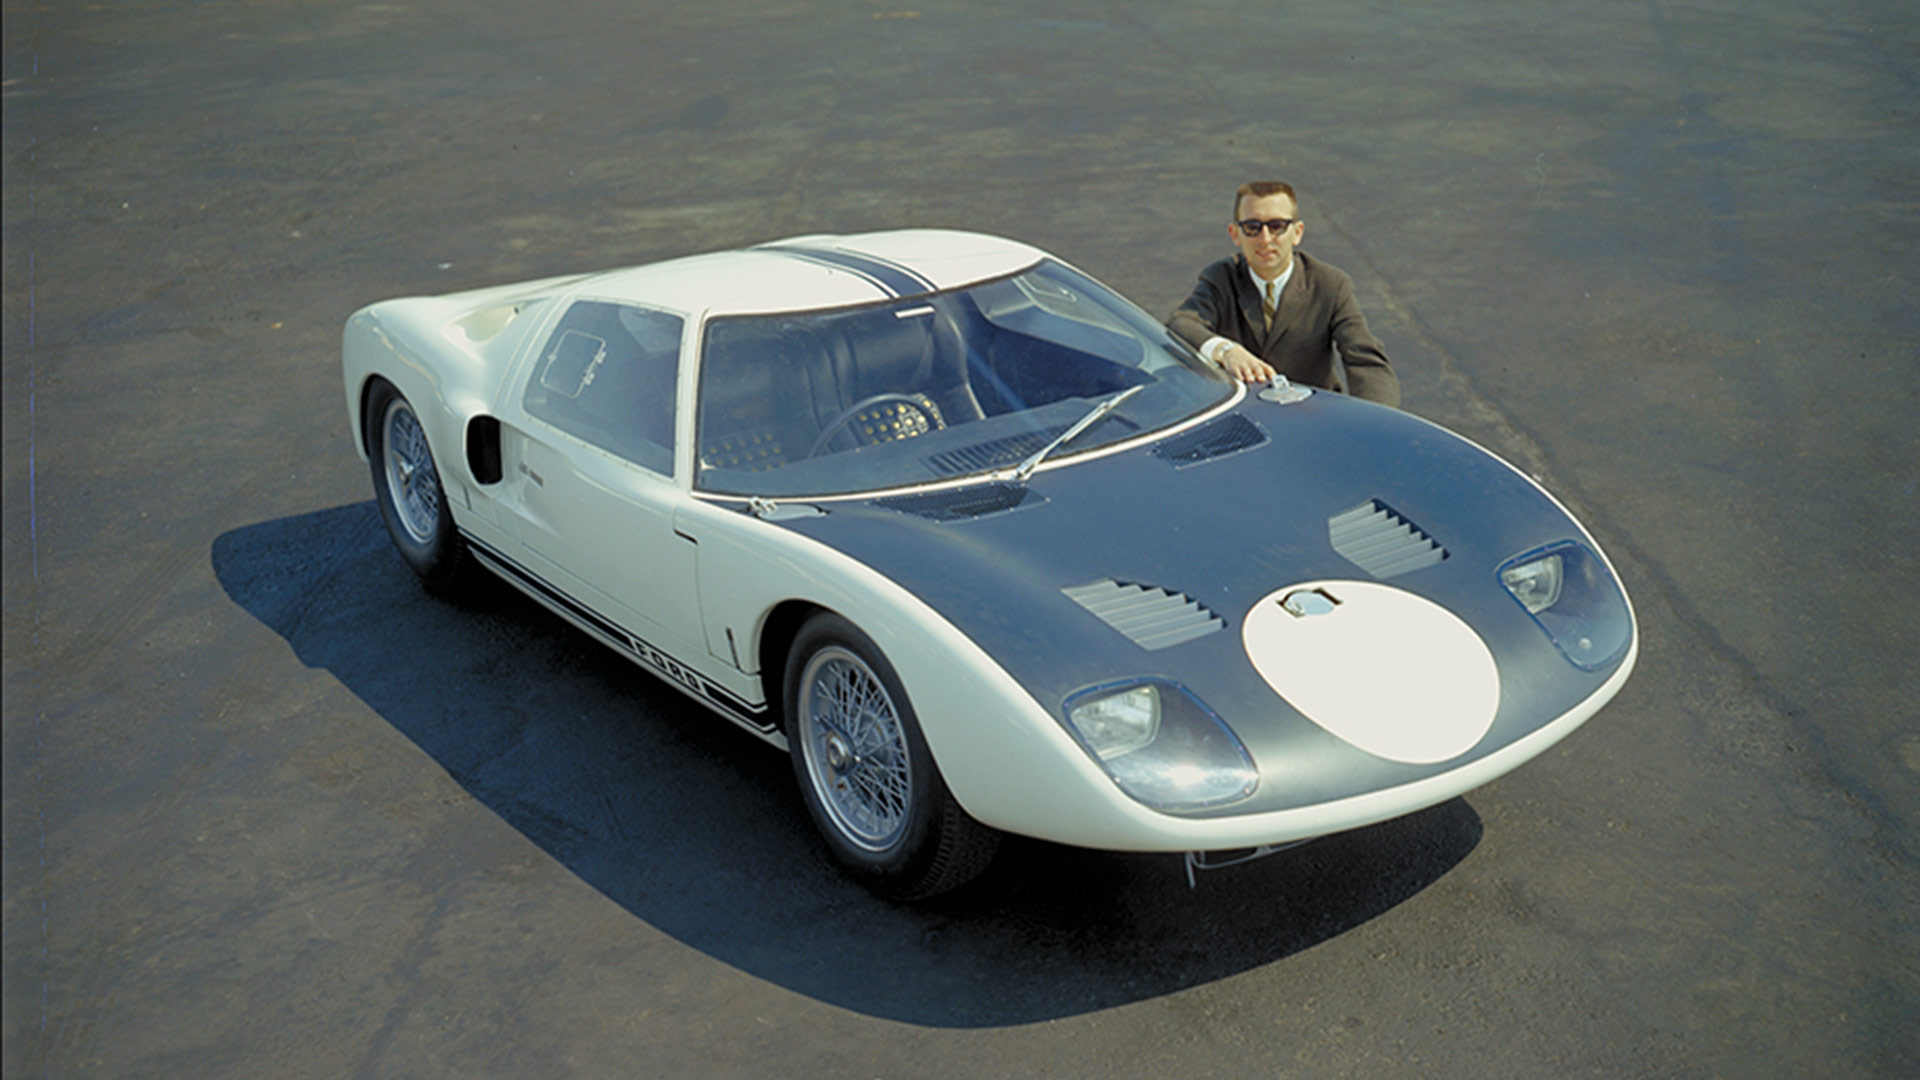 Le Mans 1966 and all that